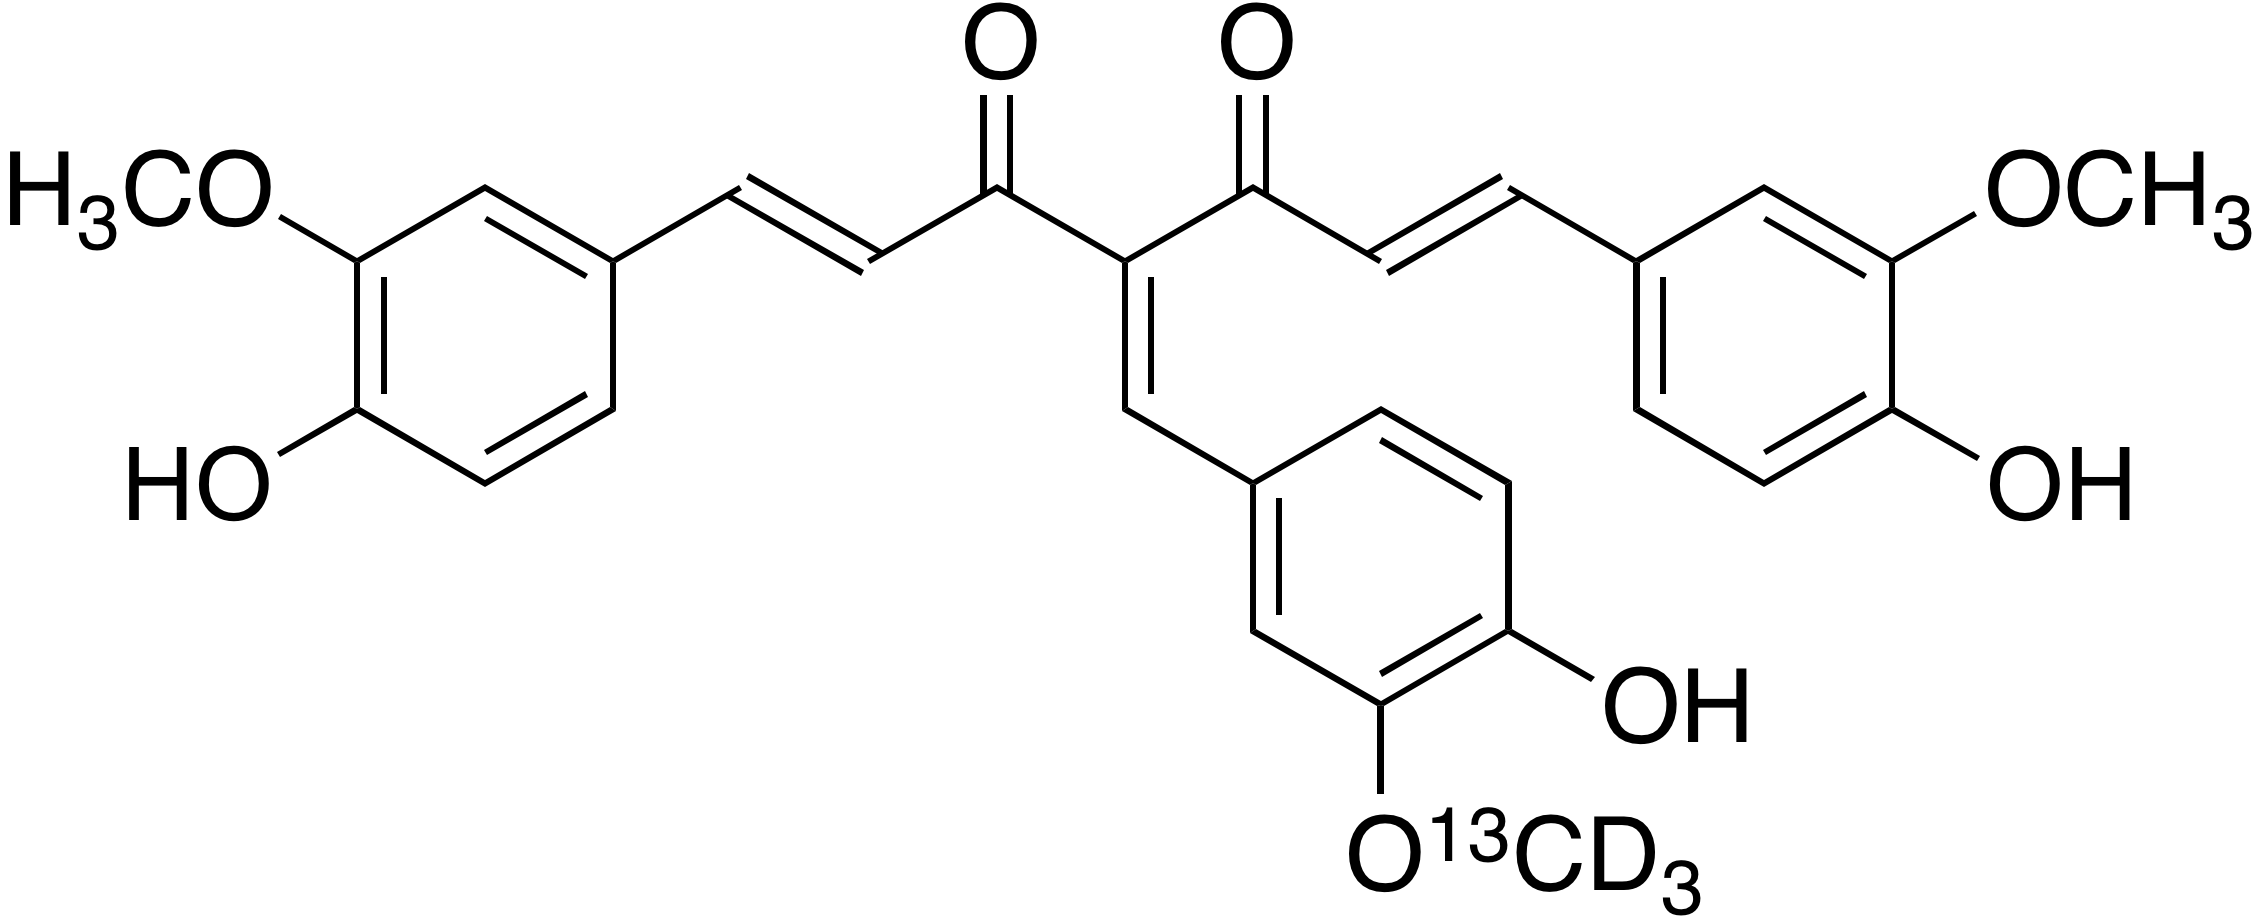 4-(4-Hydroxy-3-methoxy-<sup>13</sup>C, d<sub>3</sub>-benzylidene)curcumin